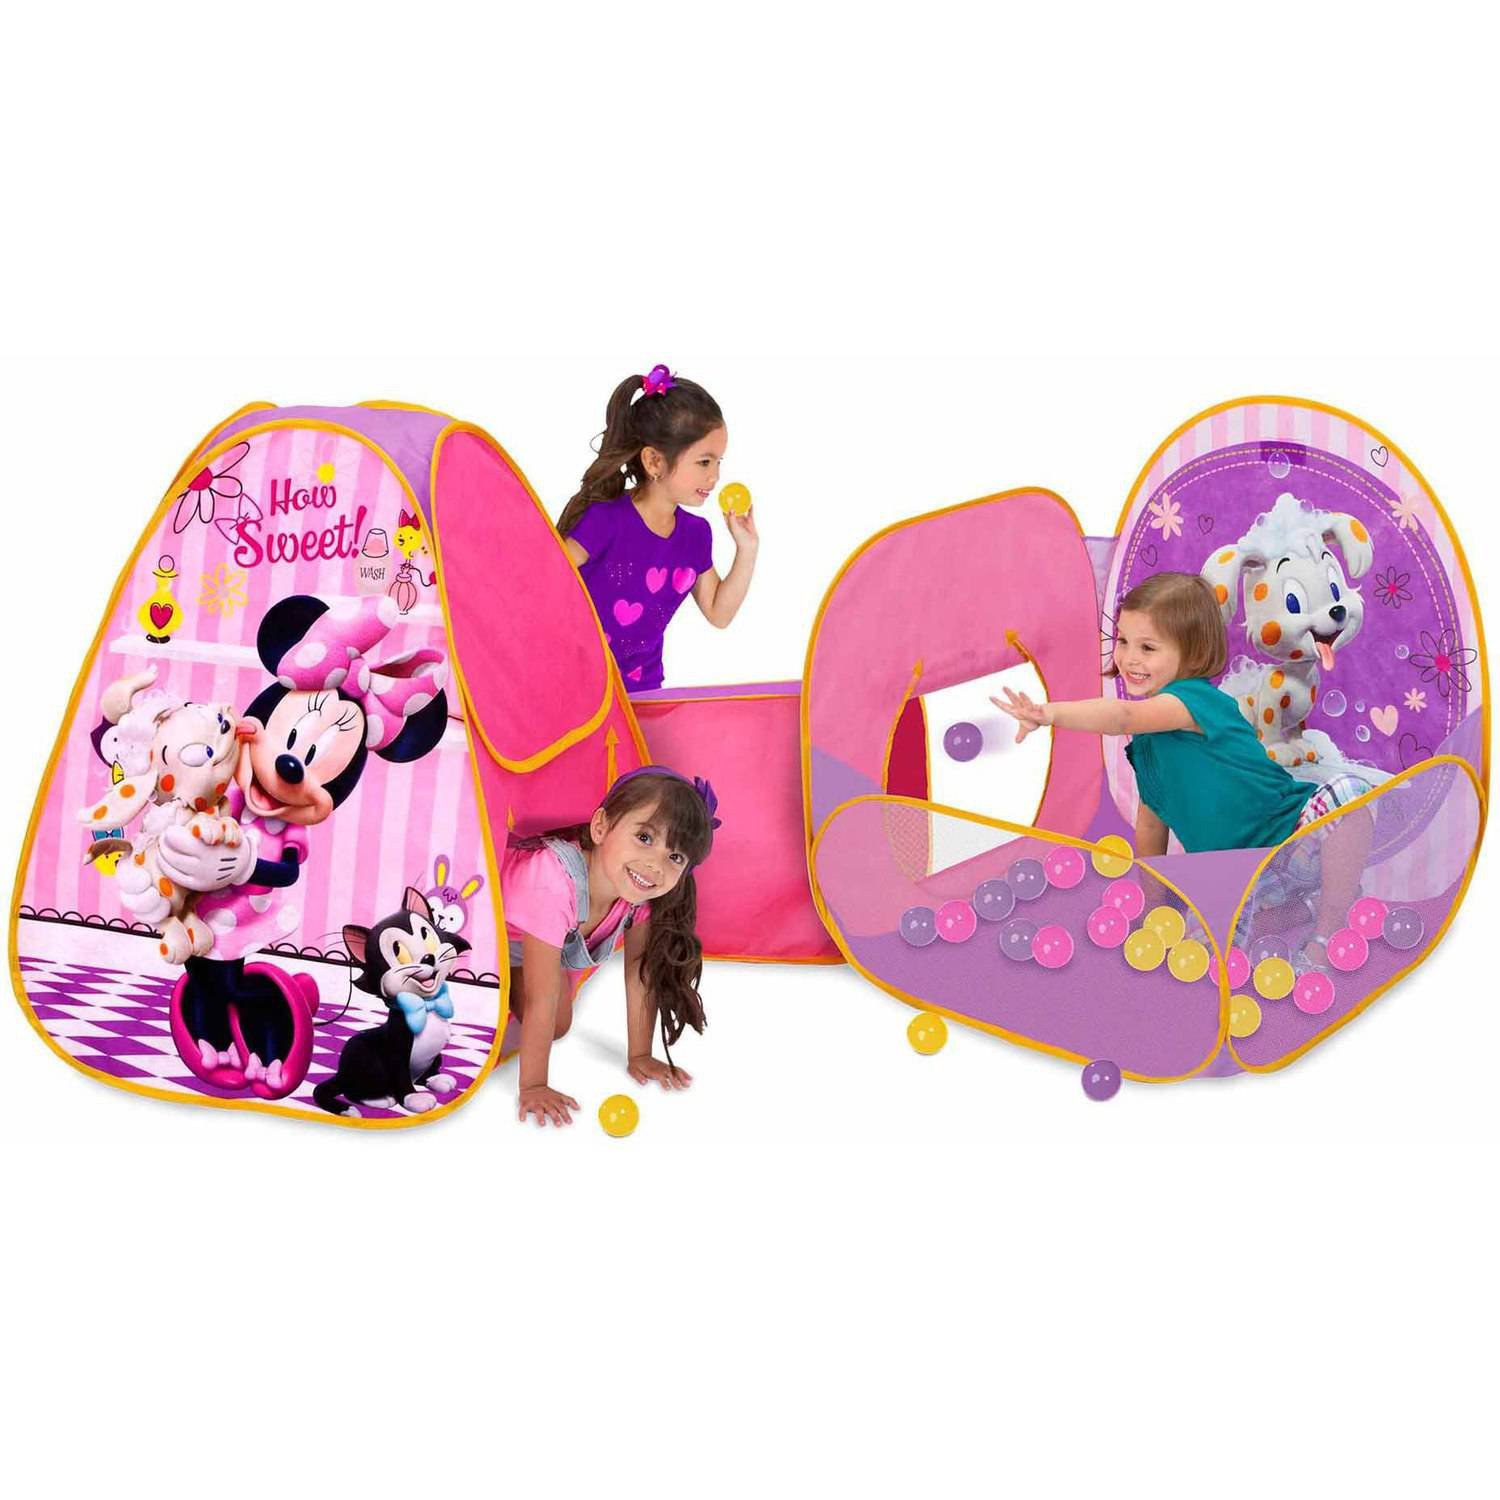 sc 1 st  Walmart & Playhut Disney Minnie Mouse Playzone - Walmart.com